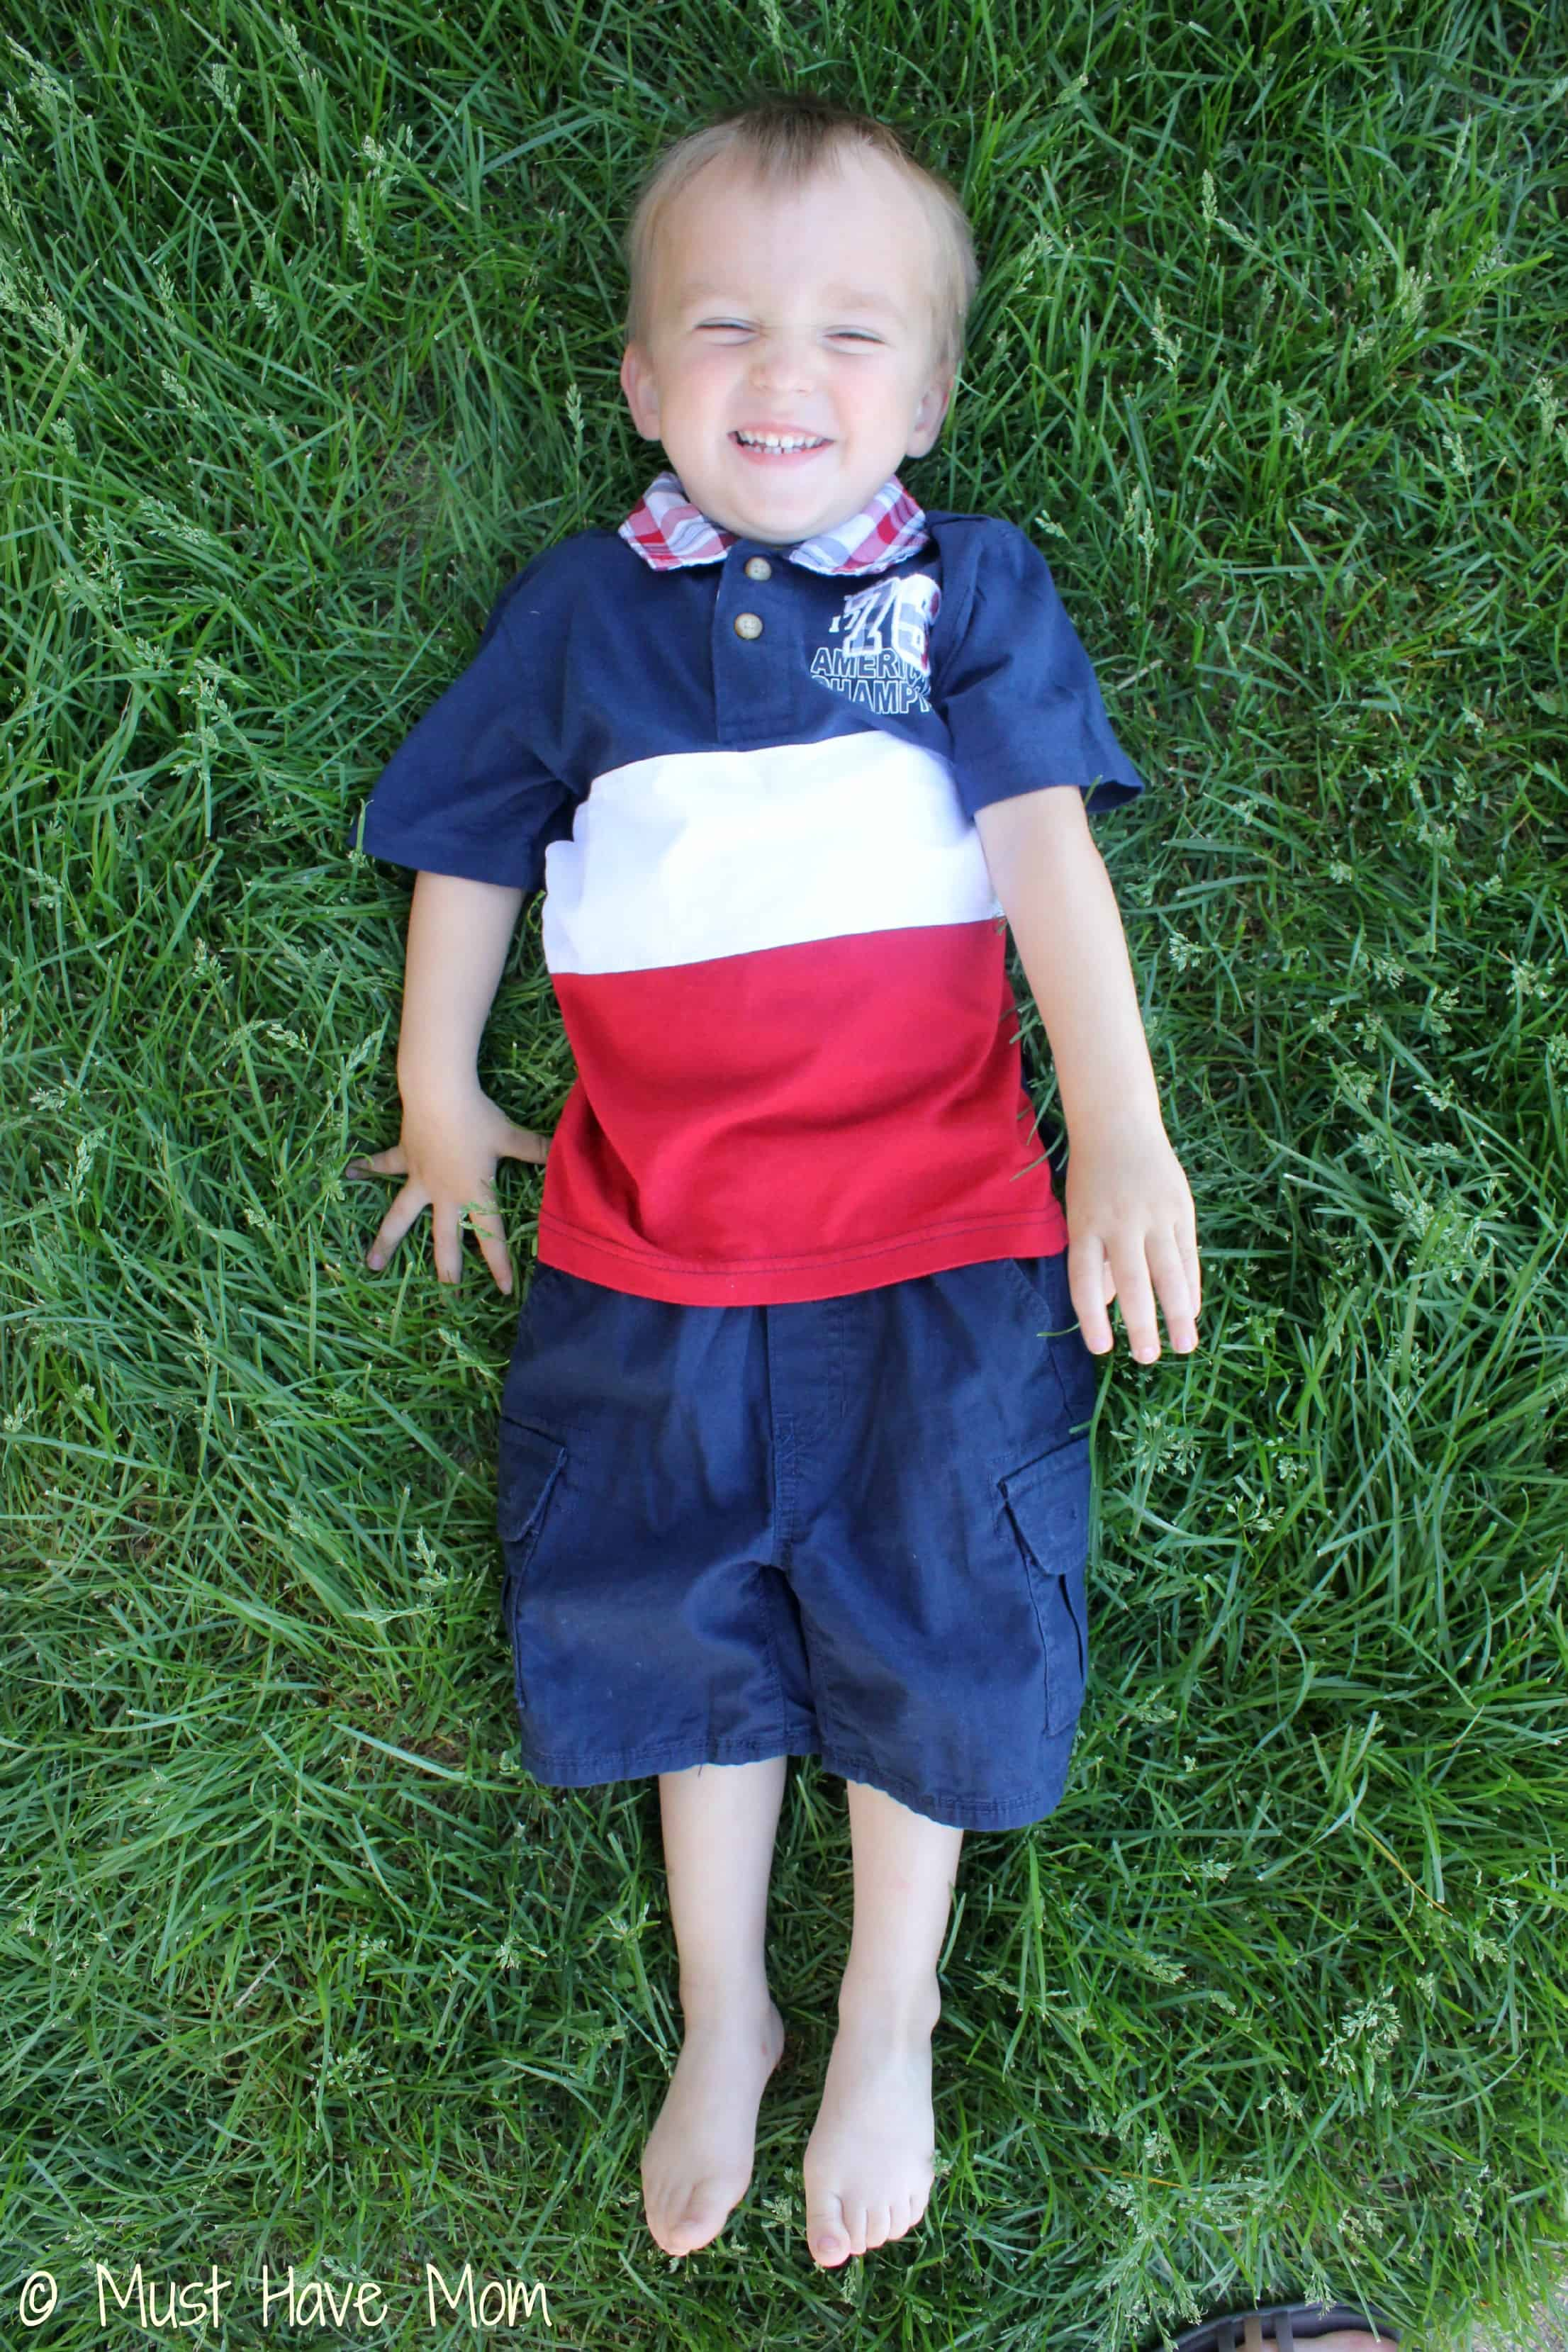 The Children's Place Toddler Americana Outfit - Must Have Mom